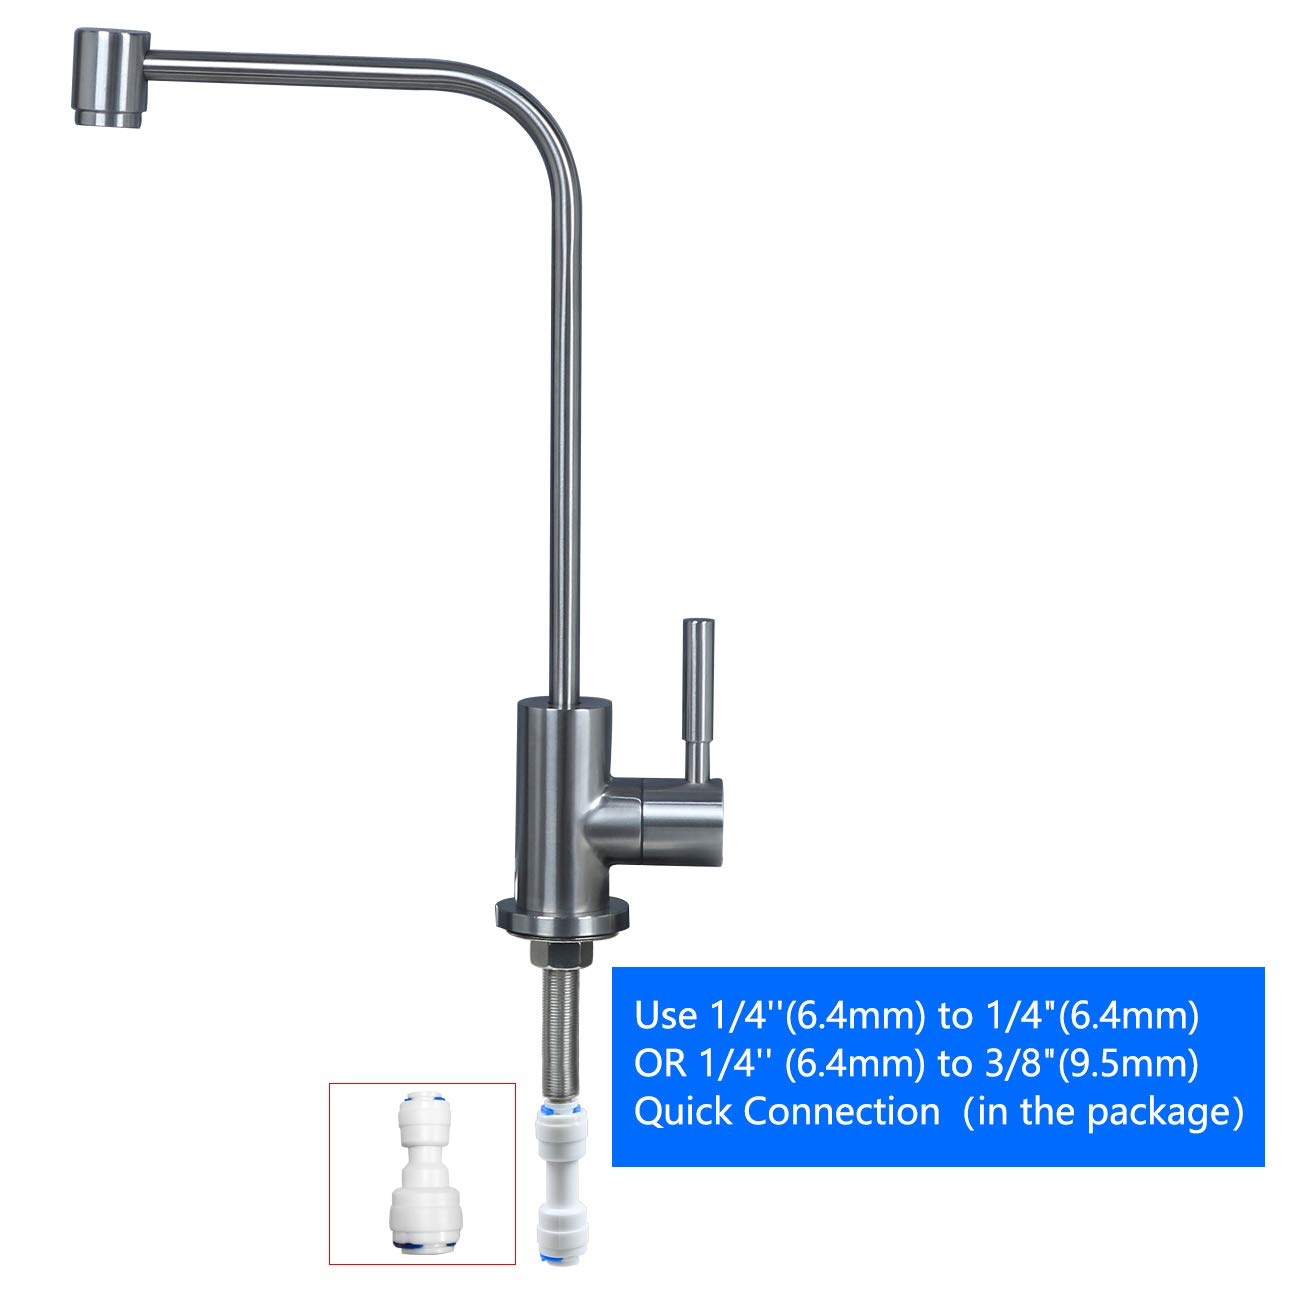 Stainless Steel Kitchen bar Sink Drinking Water filter Faucet, Fits all reverse osmosis water filtration system, Lead-Free, Brushed, Single Handle by MINGOR (Image #7)